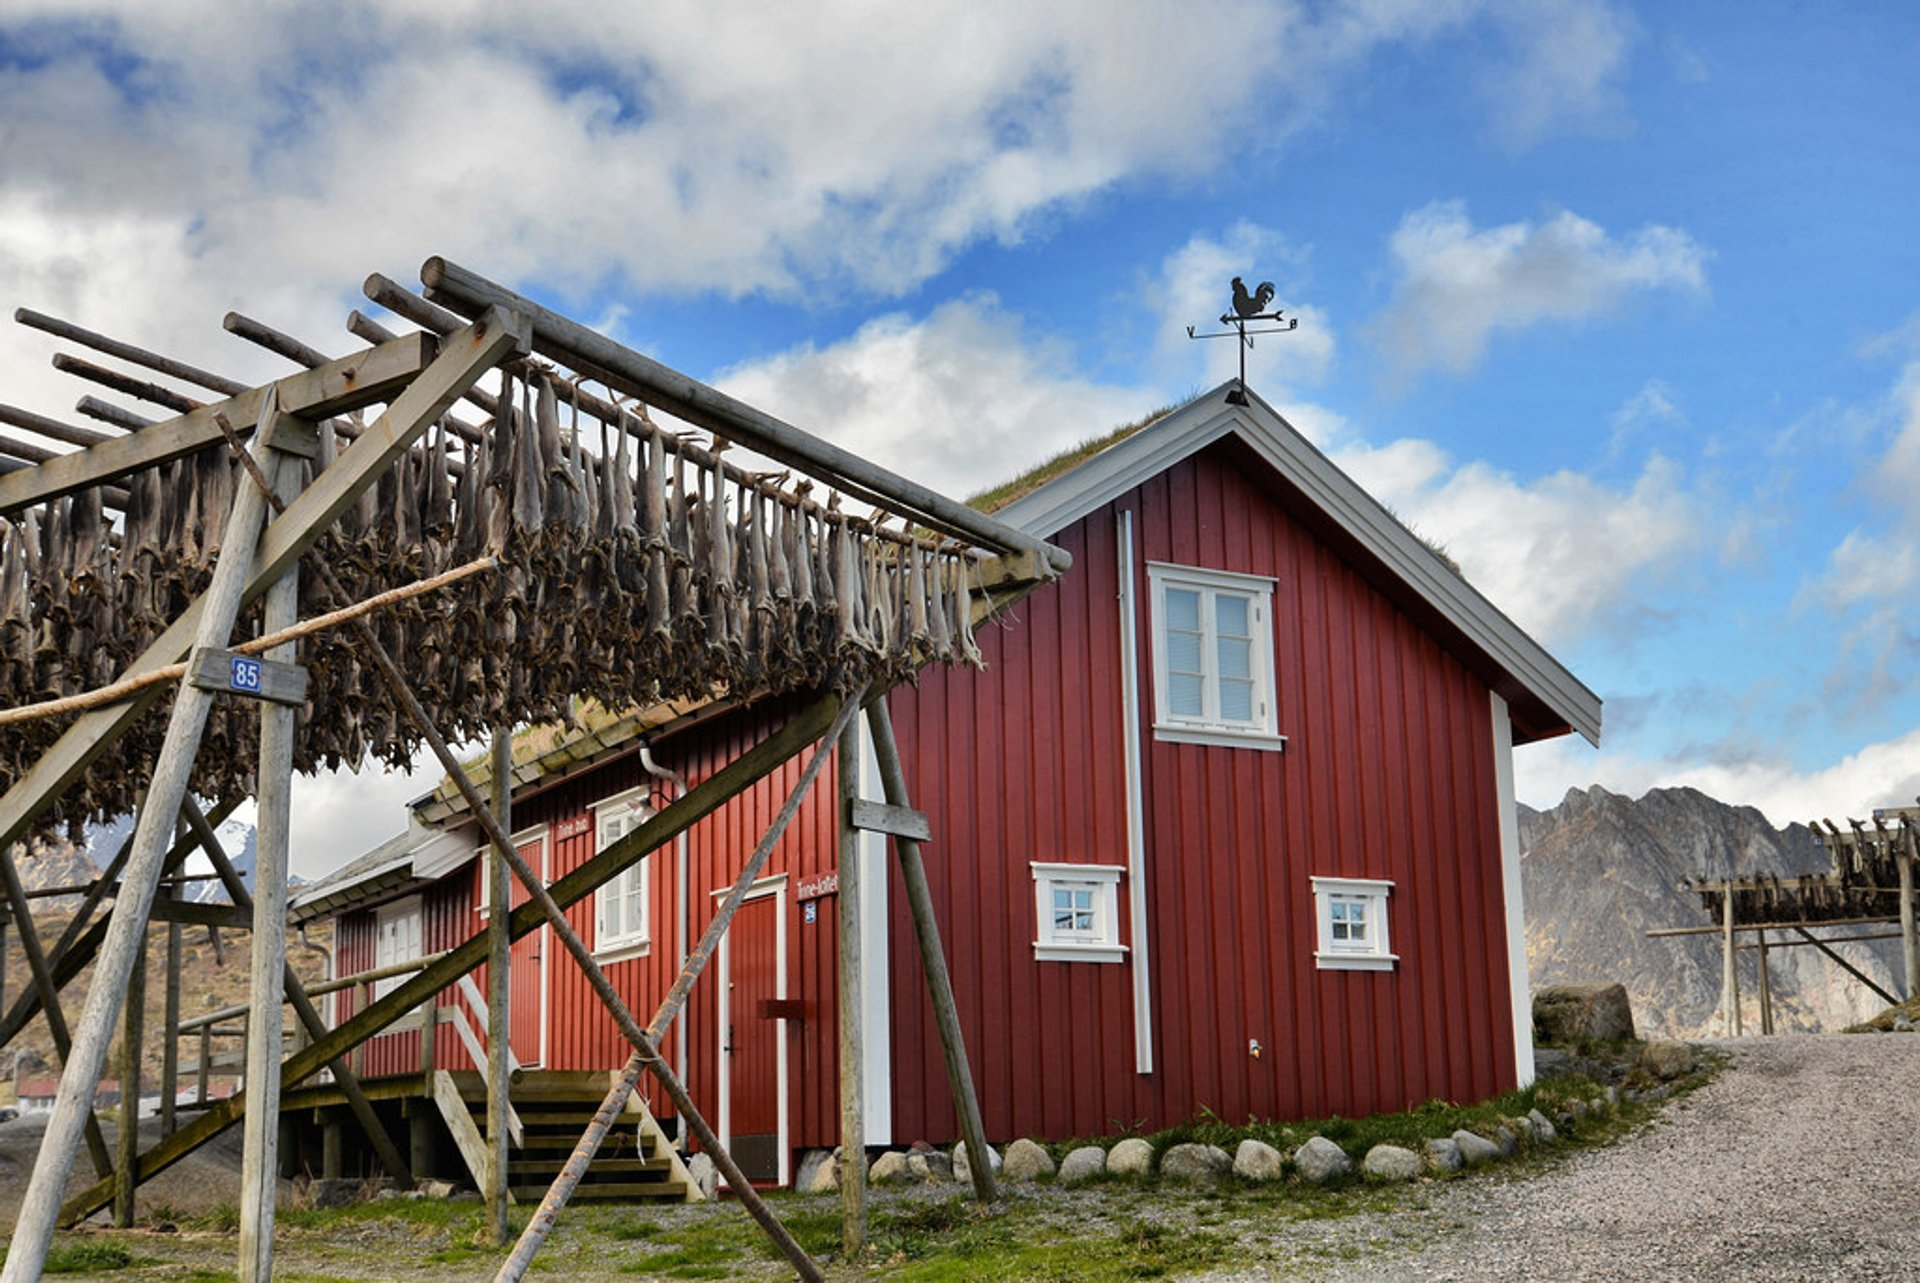 Dry Fish Rack in Norway - Best Season 2020